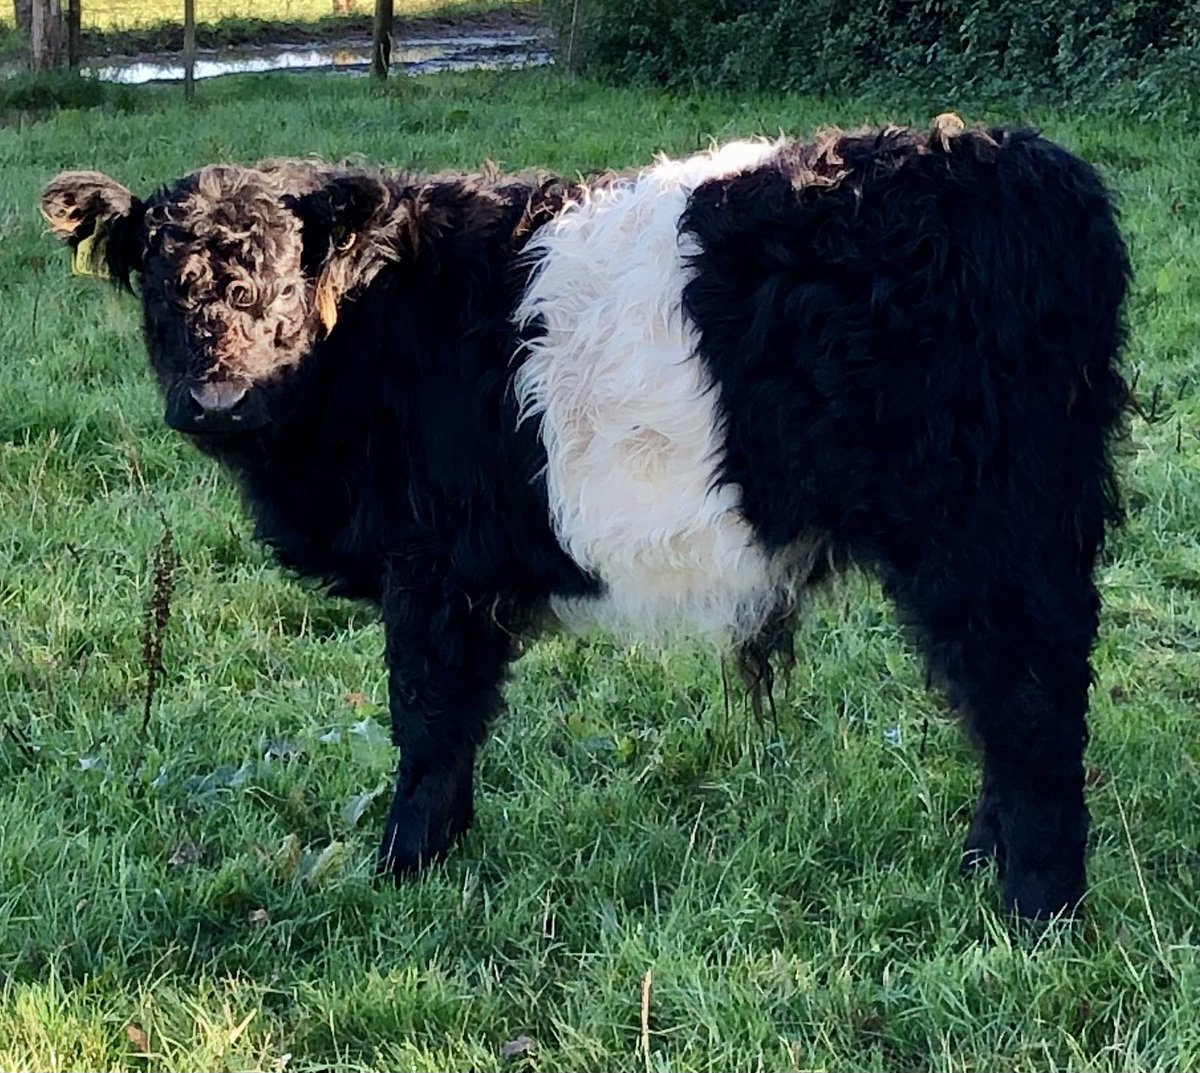 What shall we call this little #Beltie bull? Poll below in next tweet ⤵️